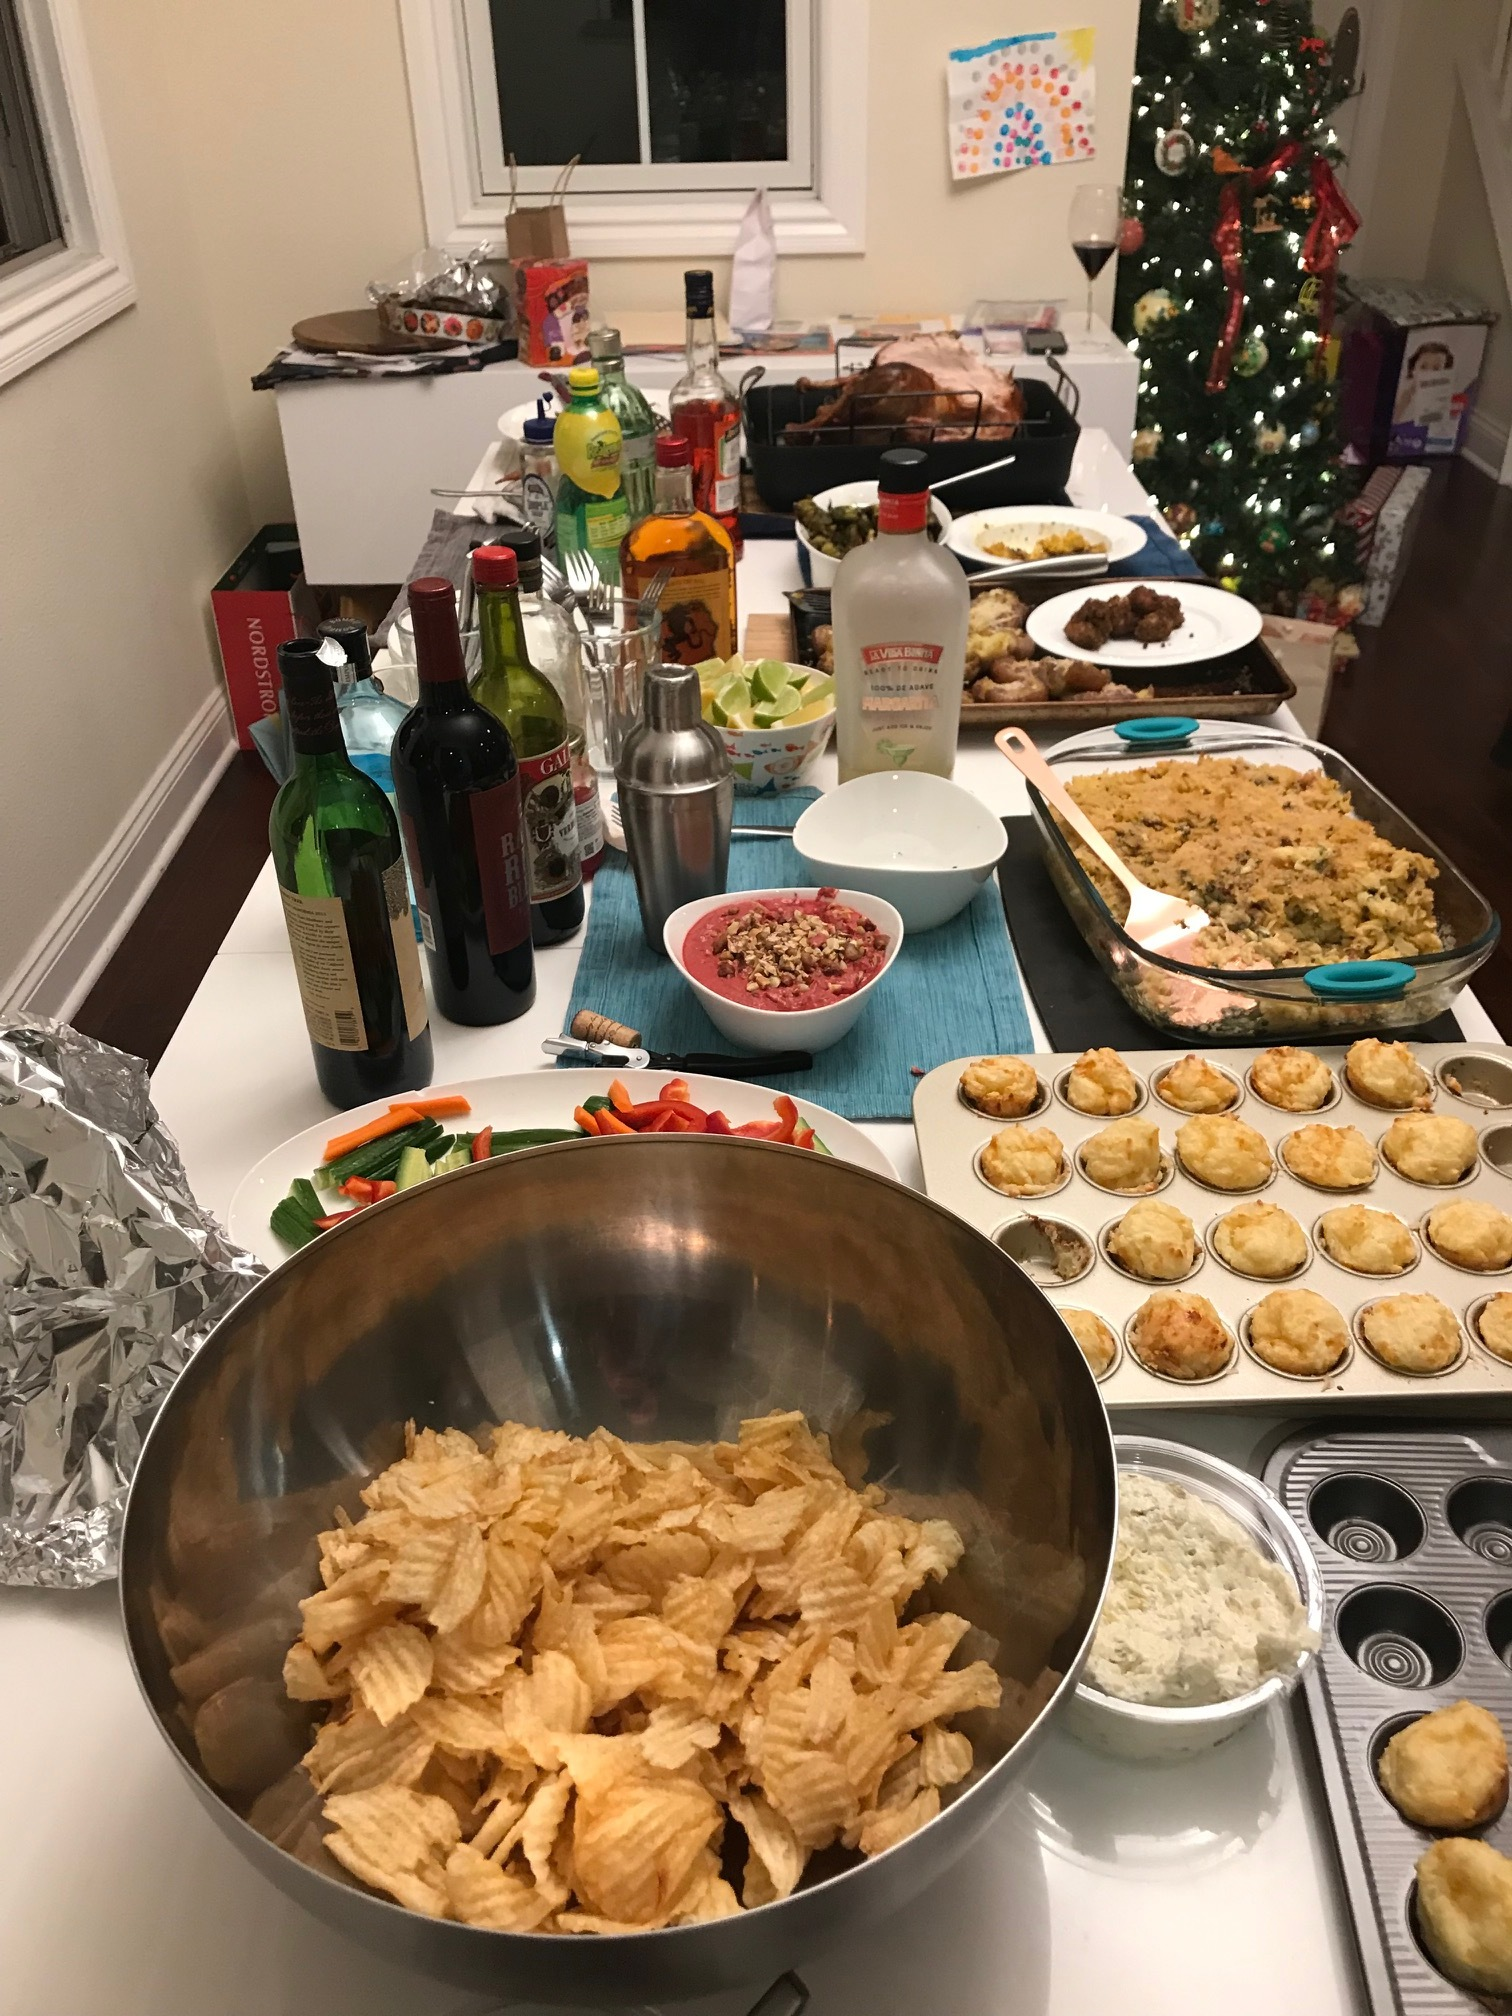 Lab holiday party spread. Chips being prominent.  - 15 Dec 18